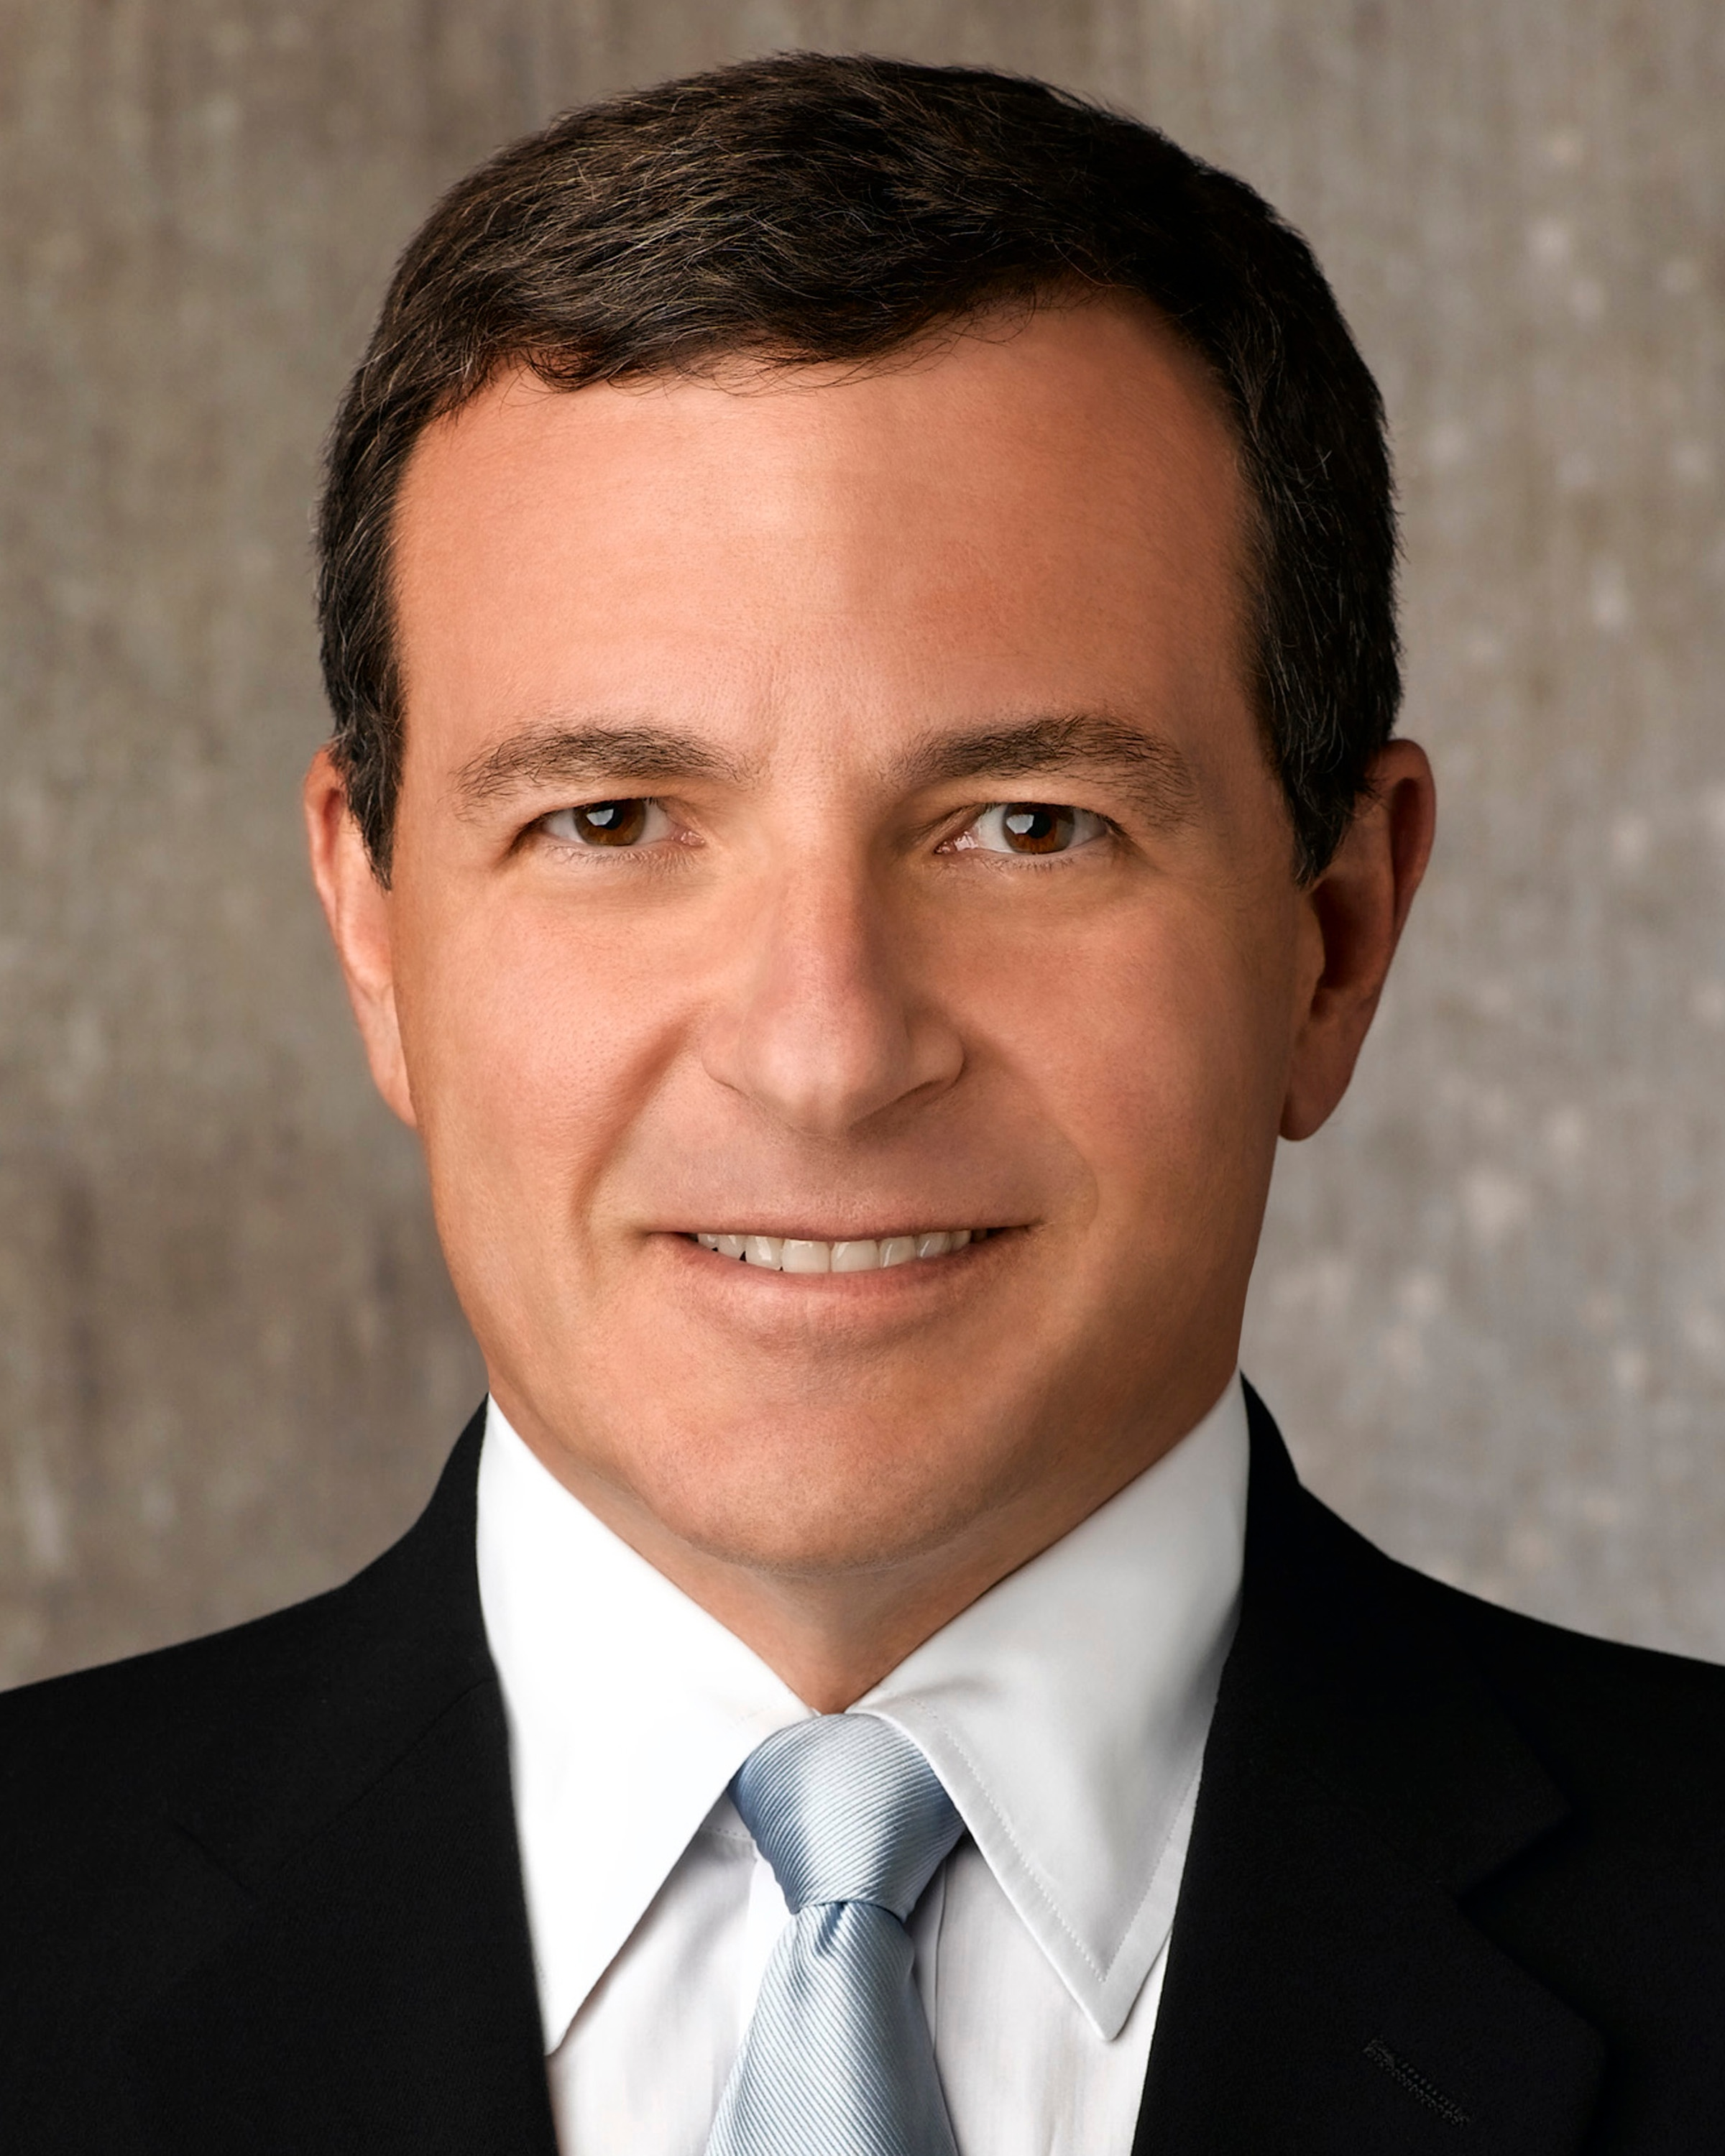 Disney CEO and newest Apple board member Robert Iger